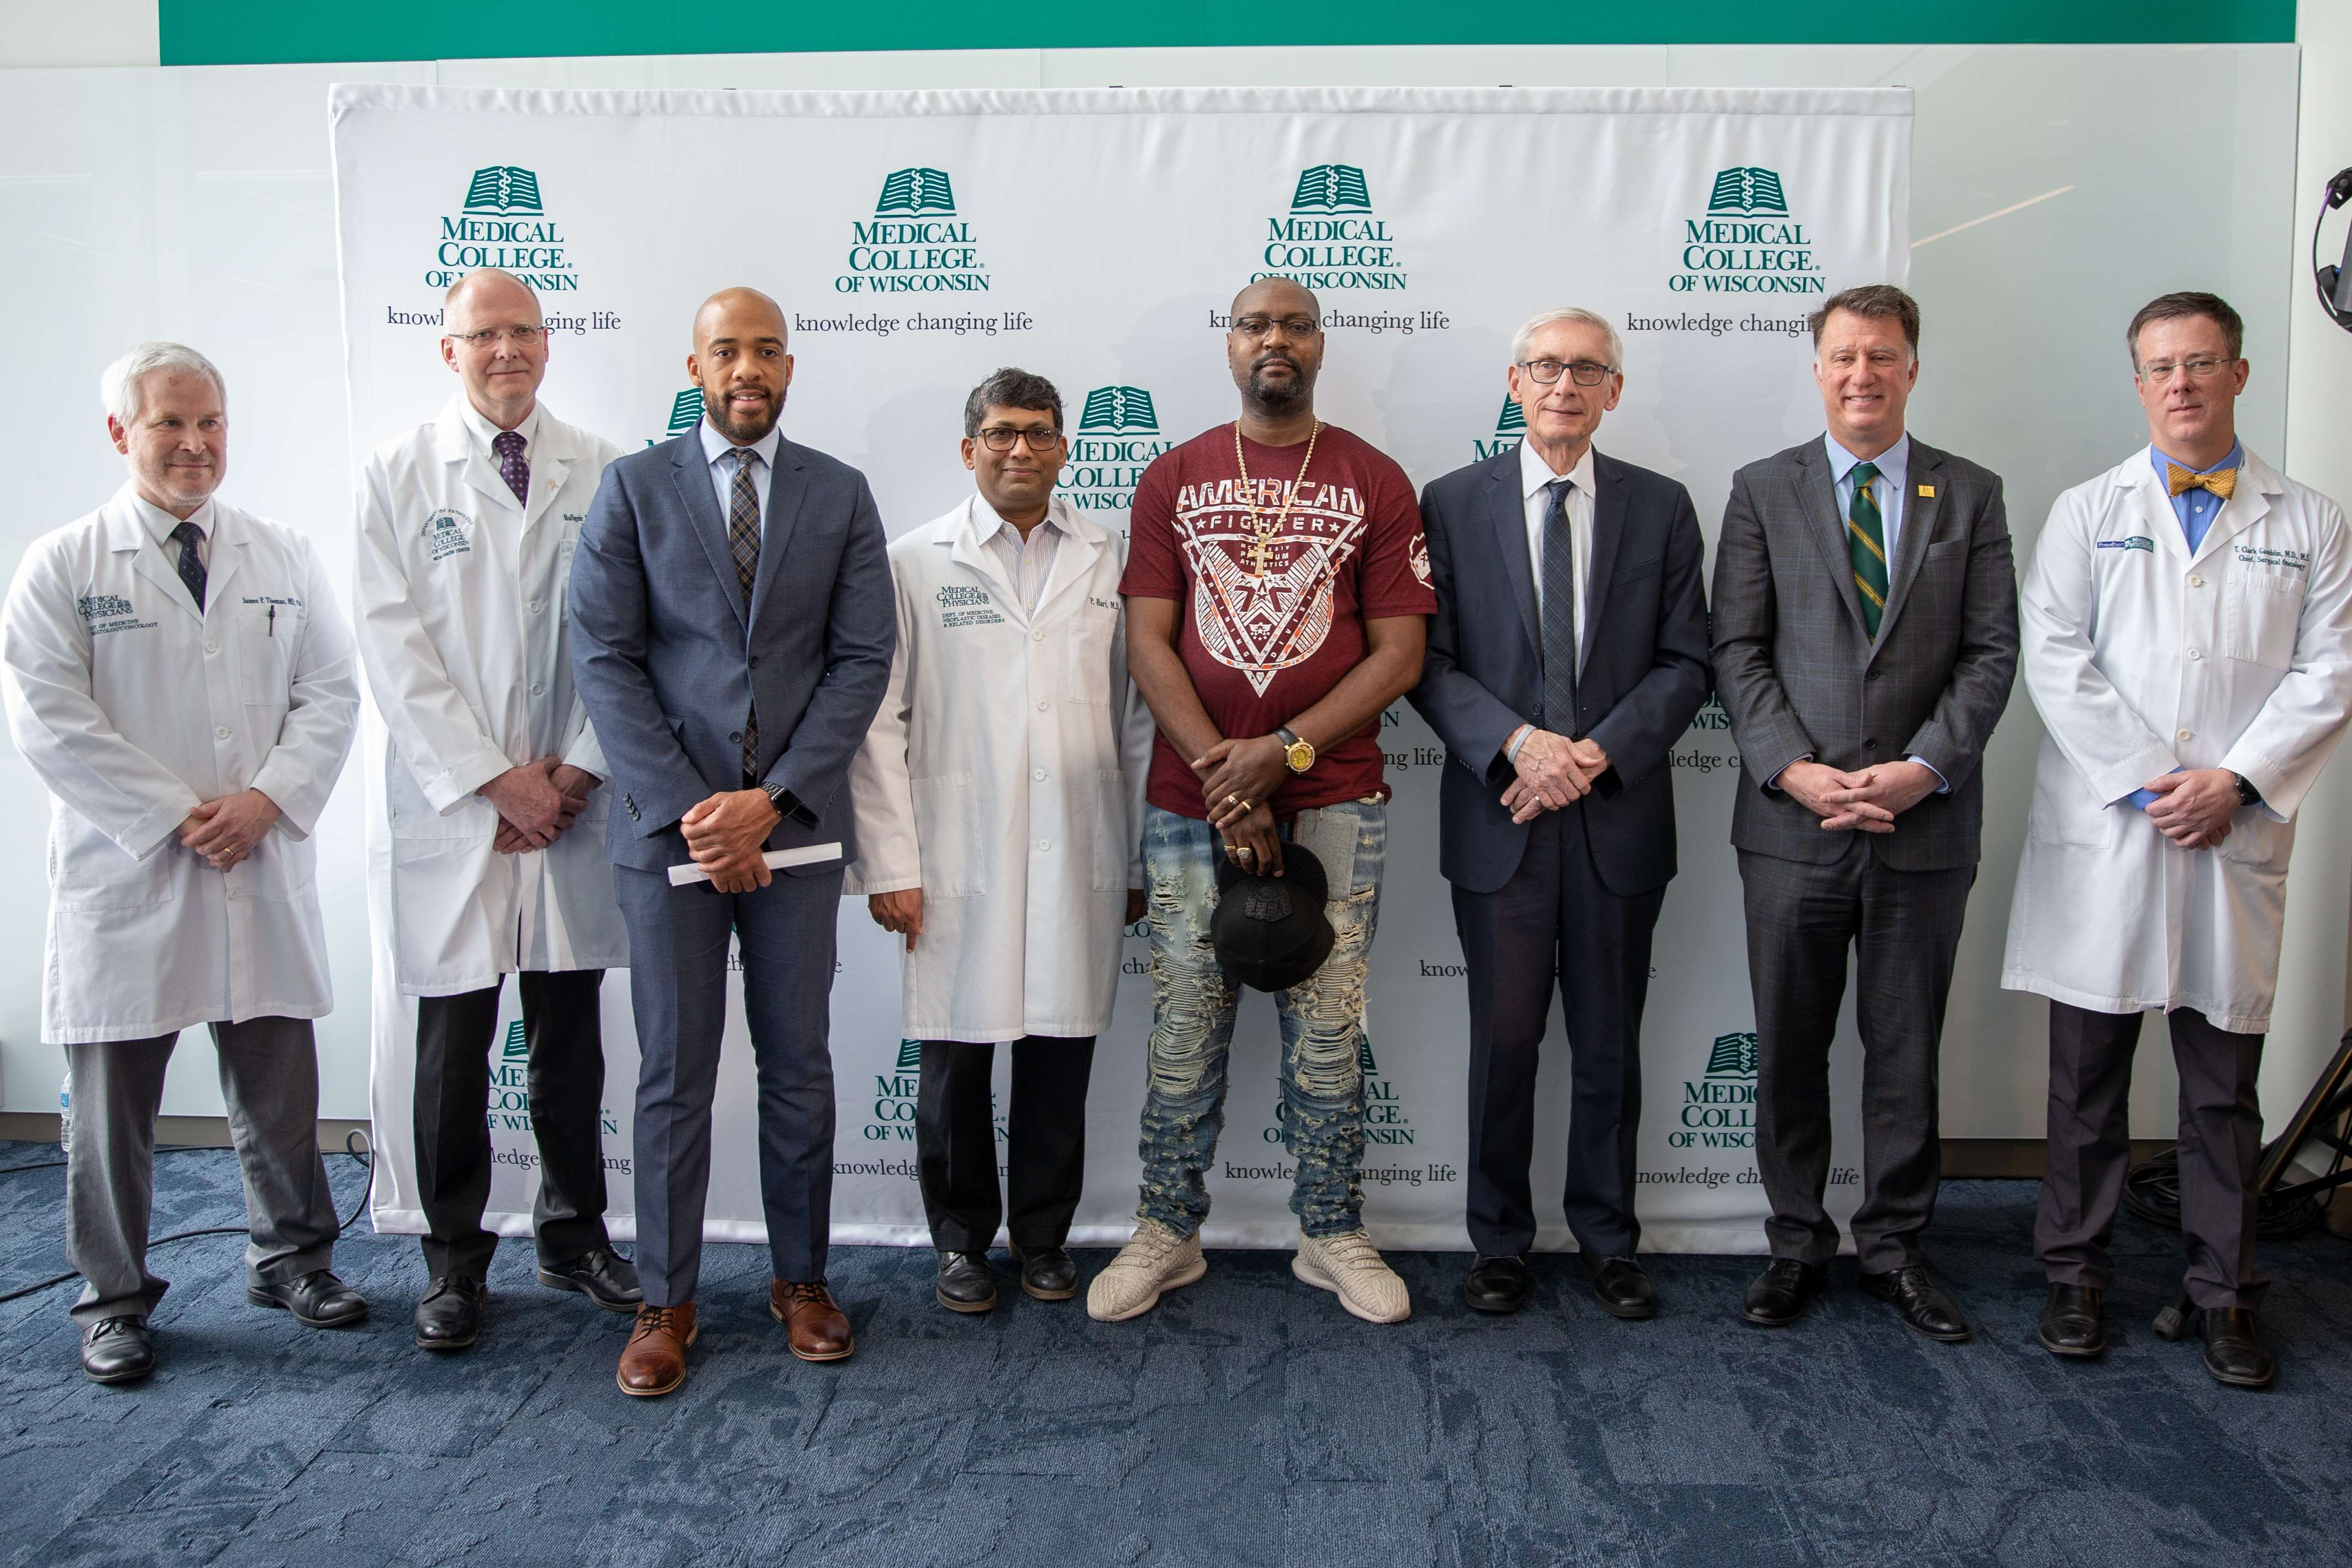 Governor Evers Cancer Center Press Conference Image